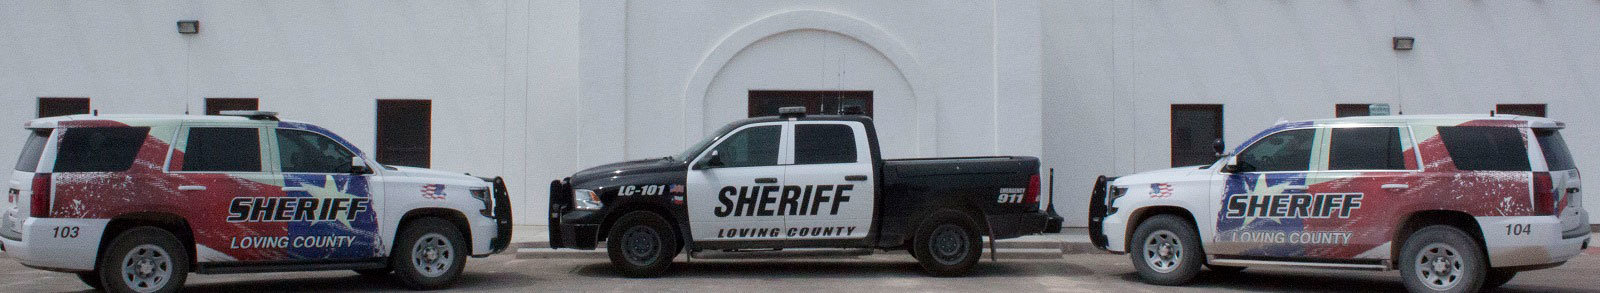 Loving County Sheriff TX Homepage Slideshow